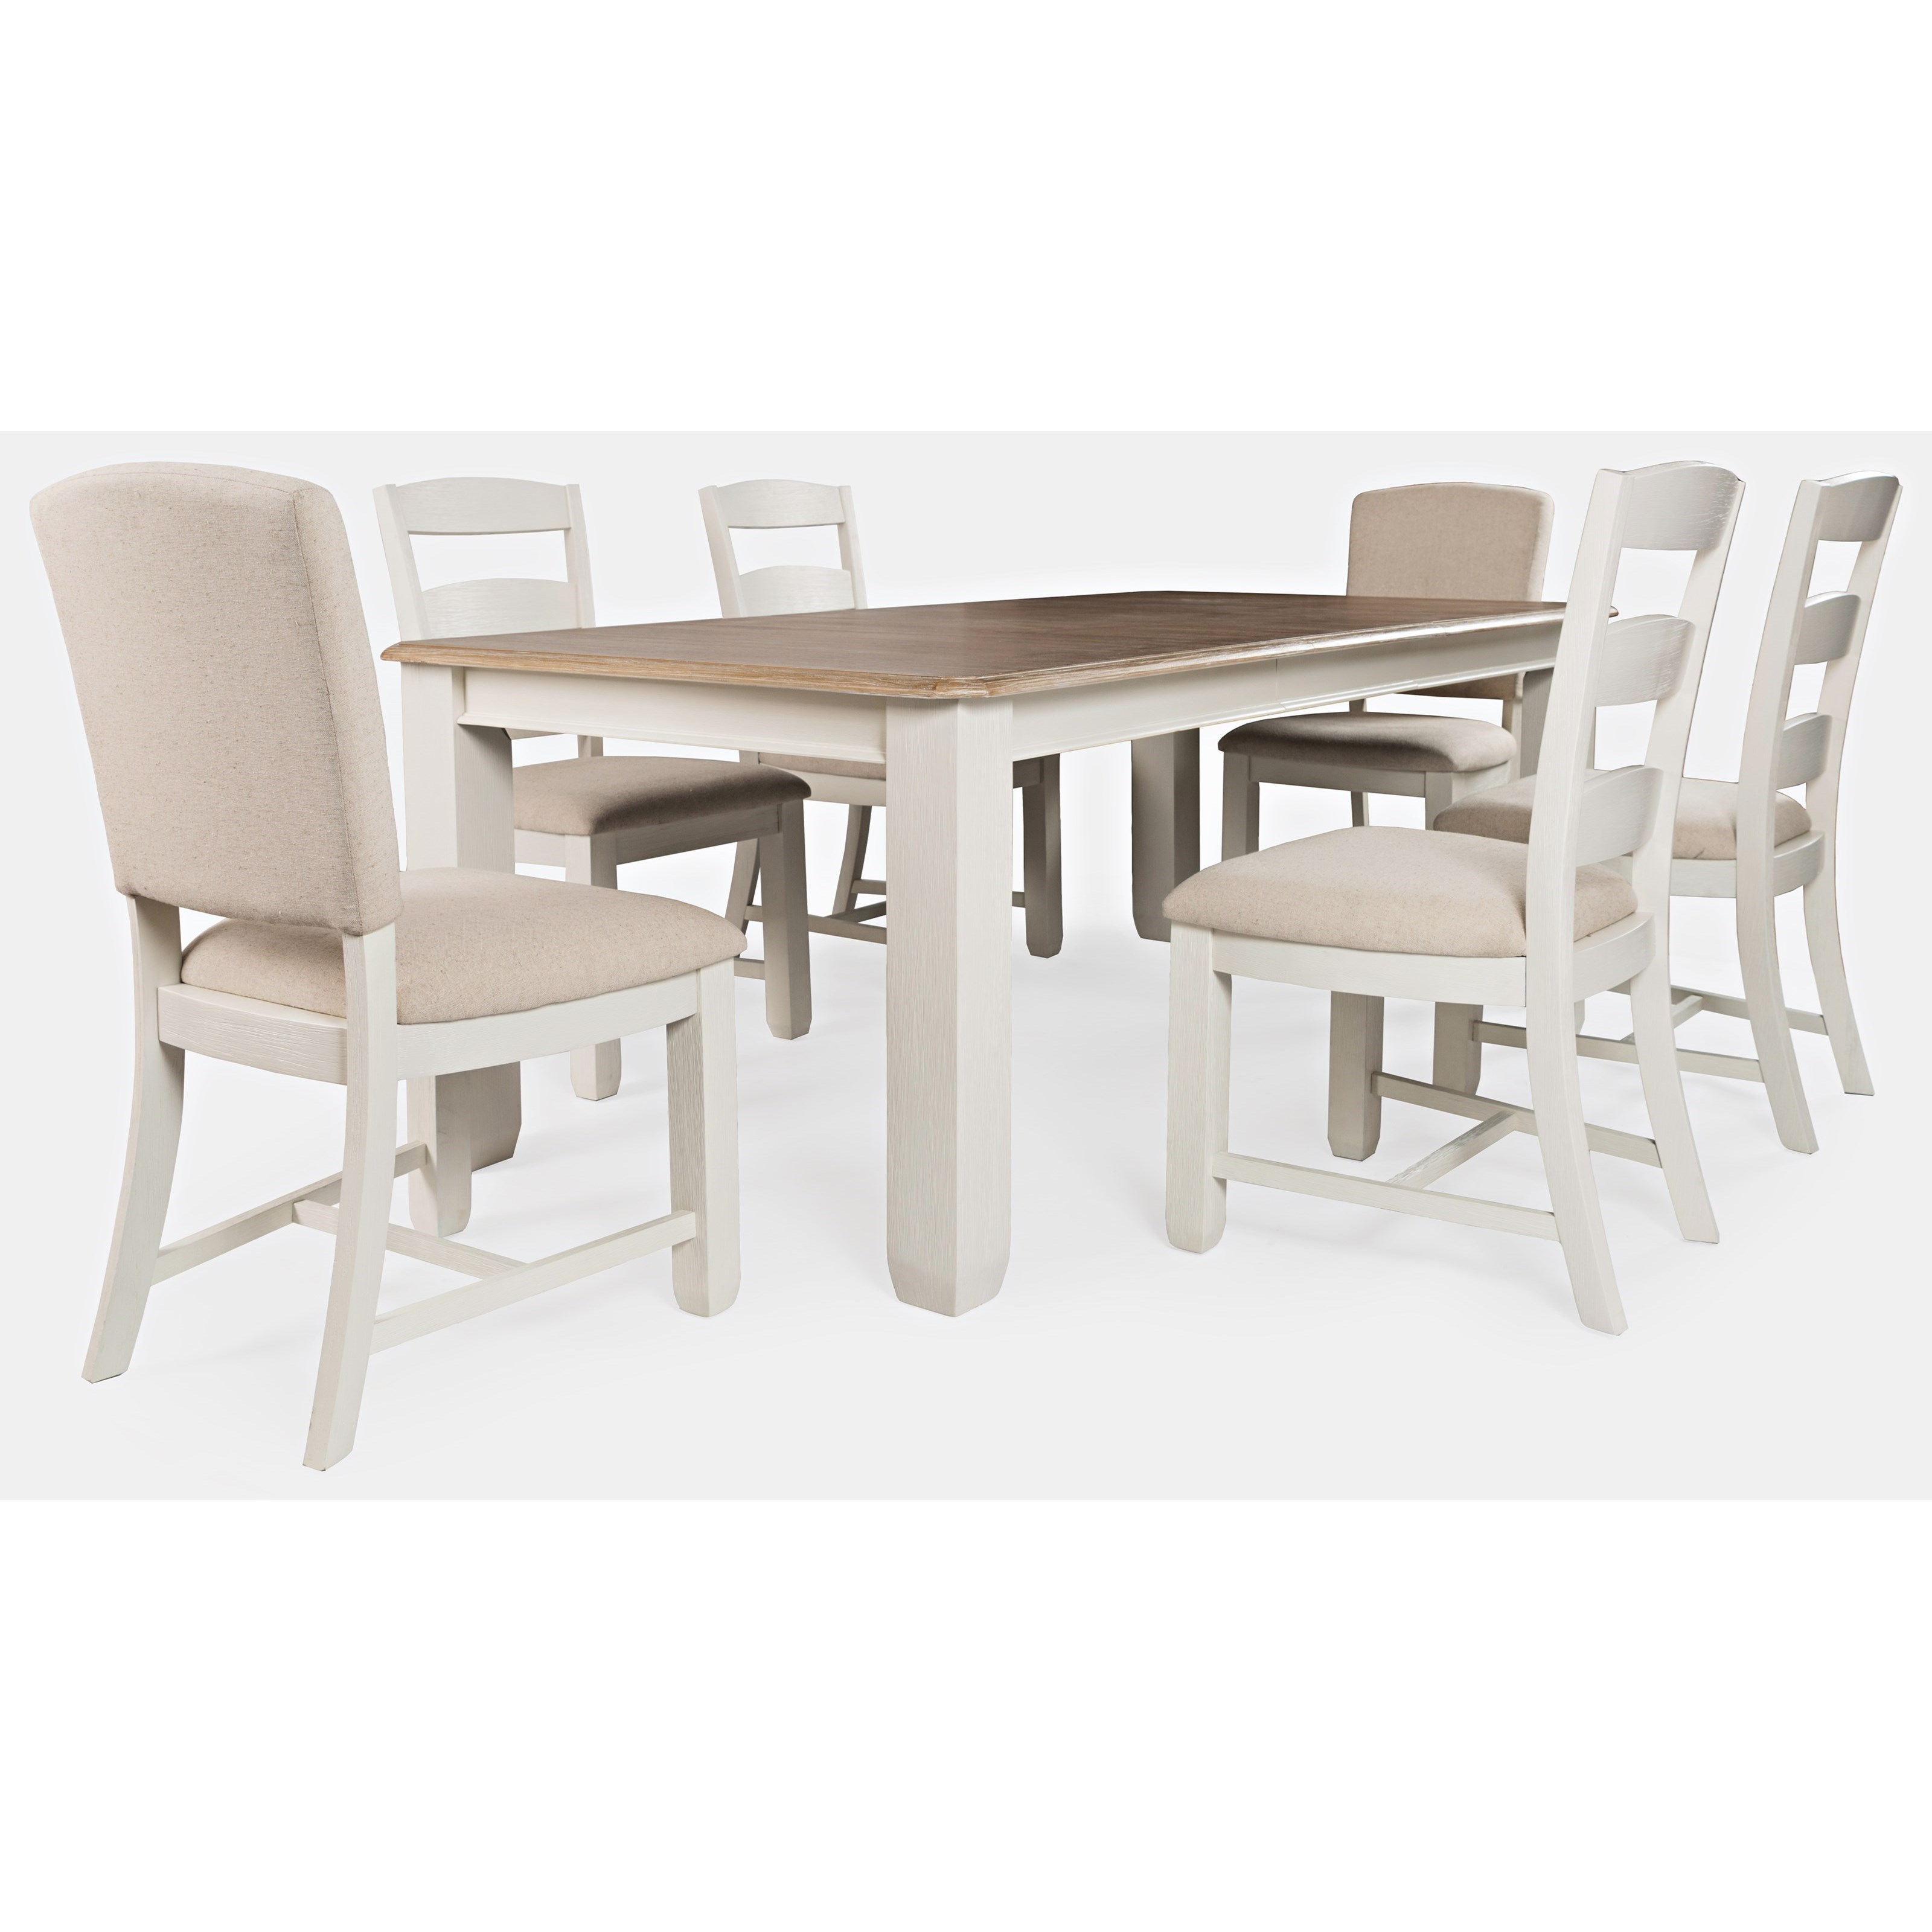 Dana Point 7-Piece Table and Chair Set by Jofran at Jofran